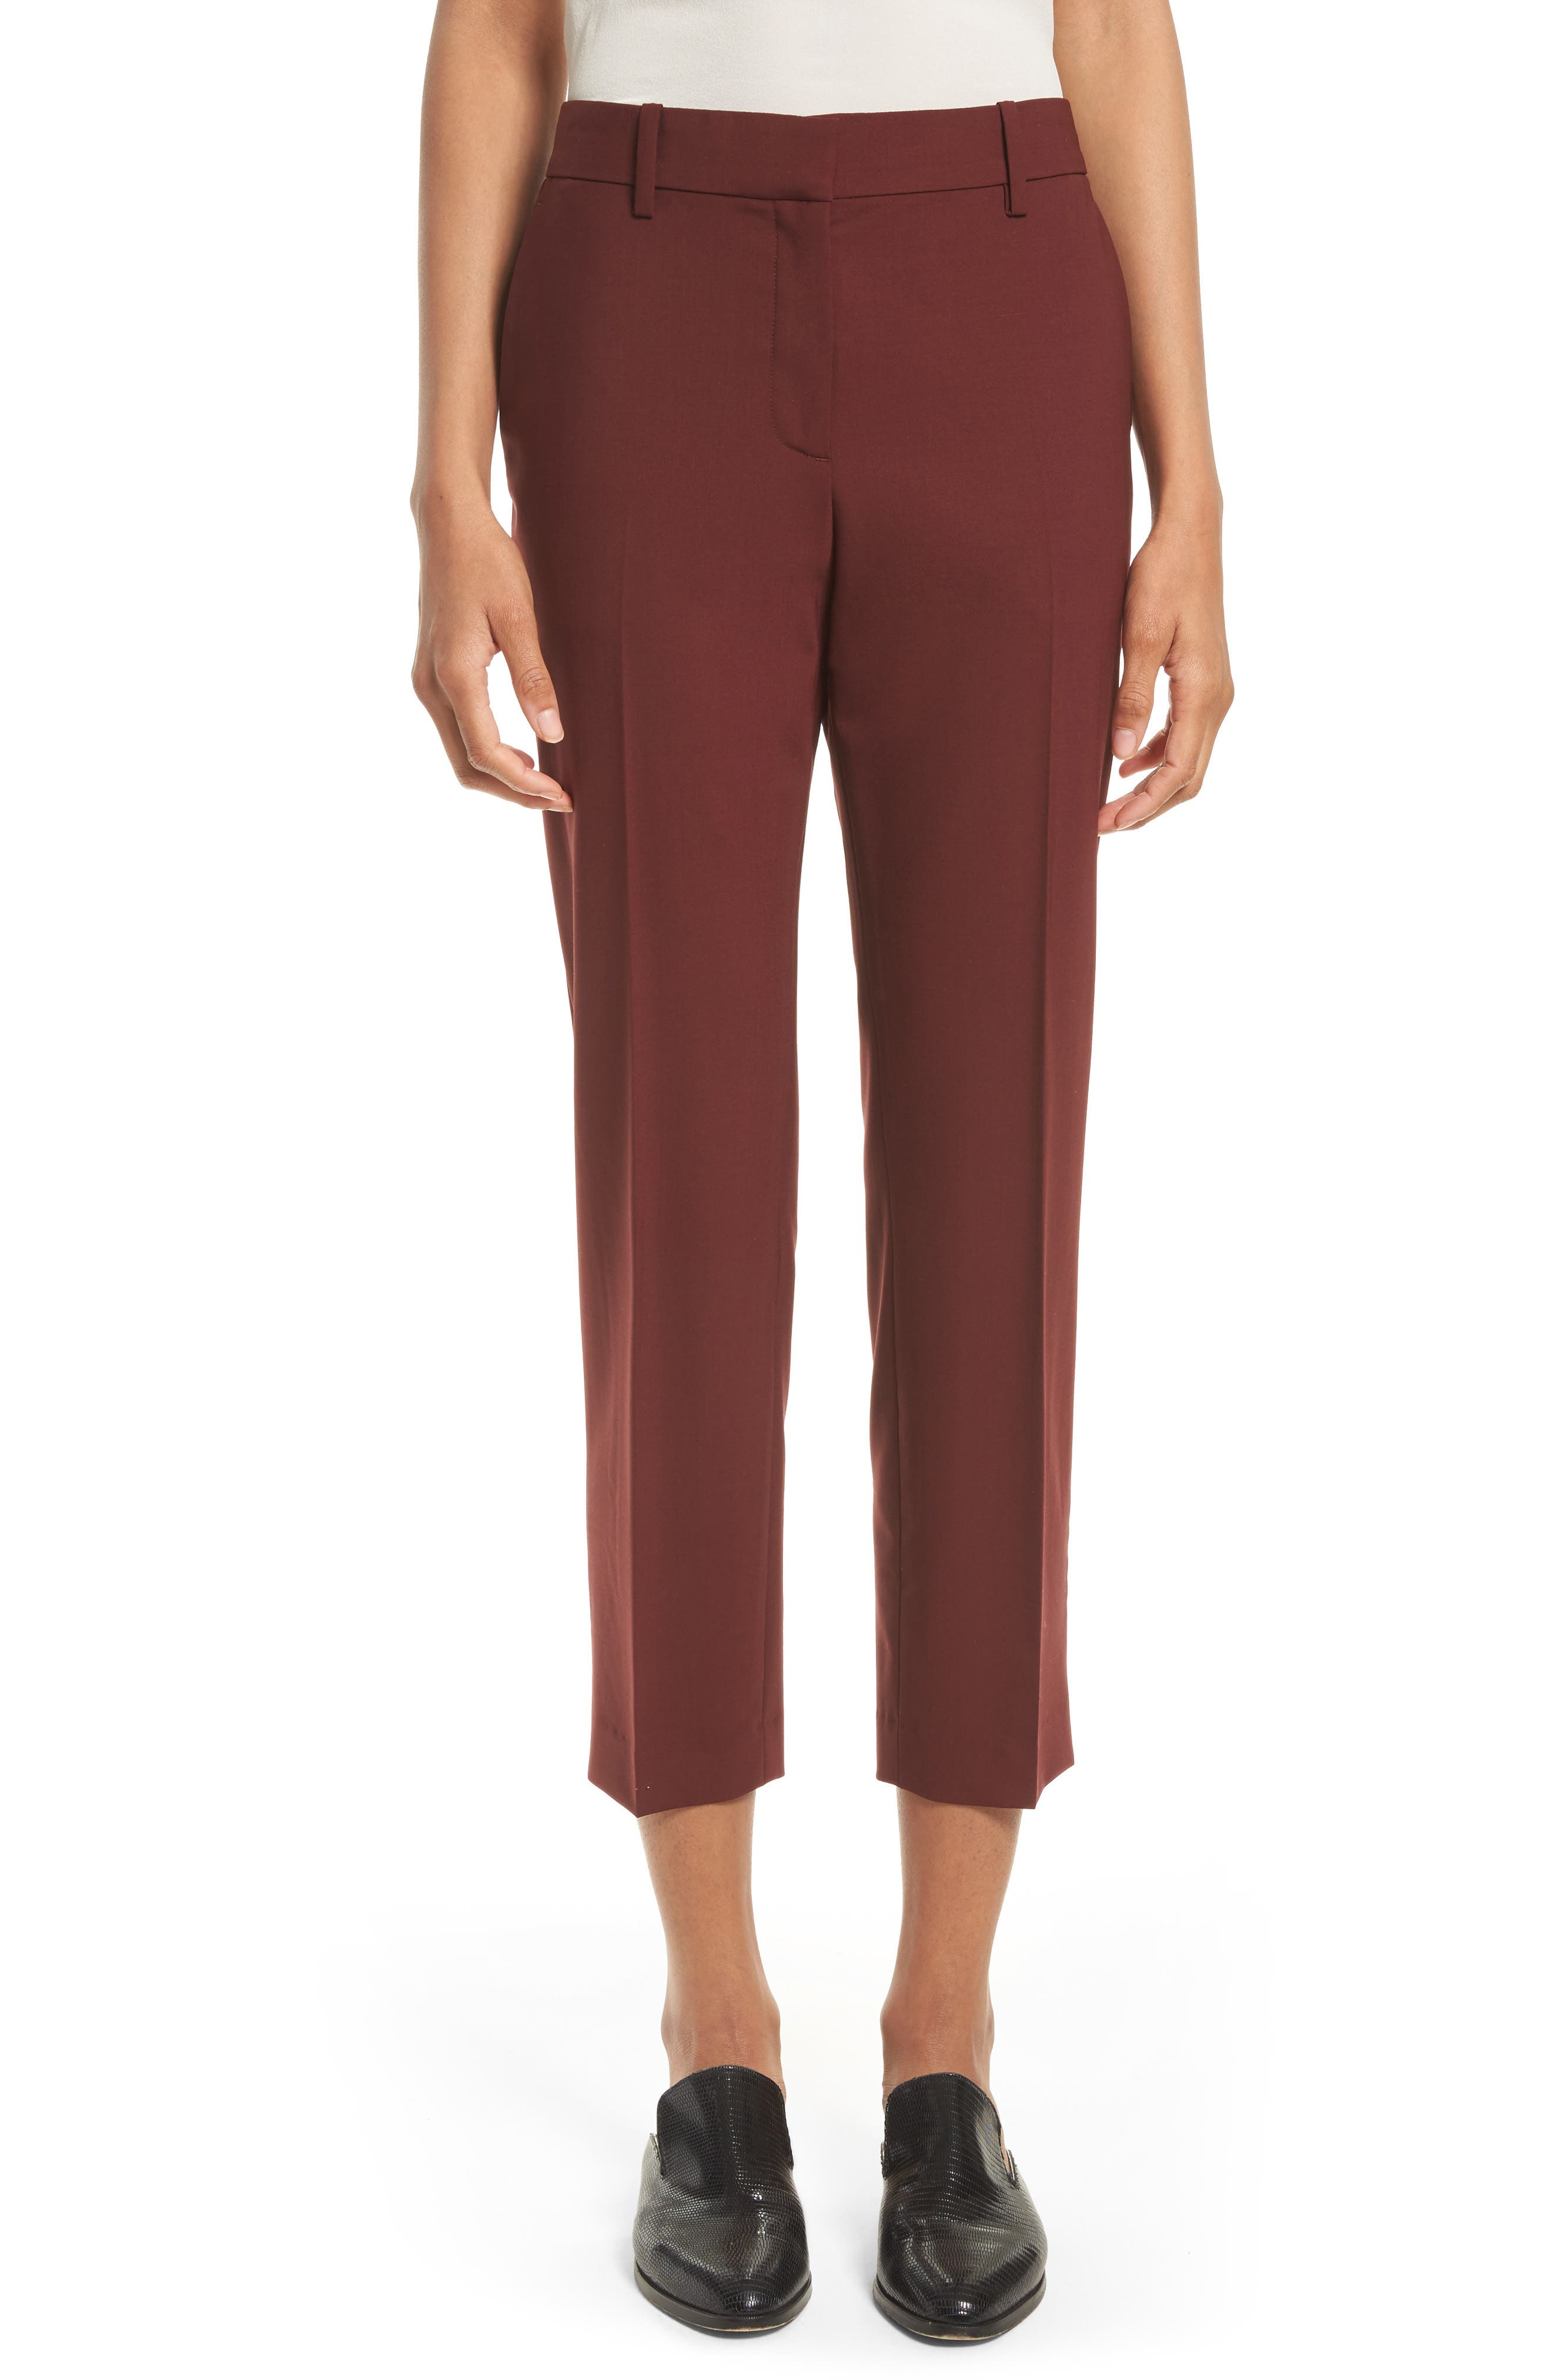 THEORY Treeca 2 Betoken Wool Blend Pants